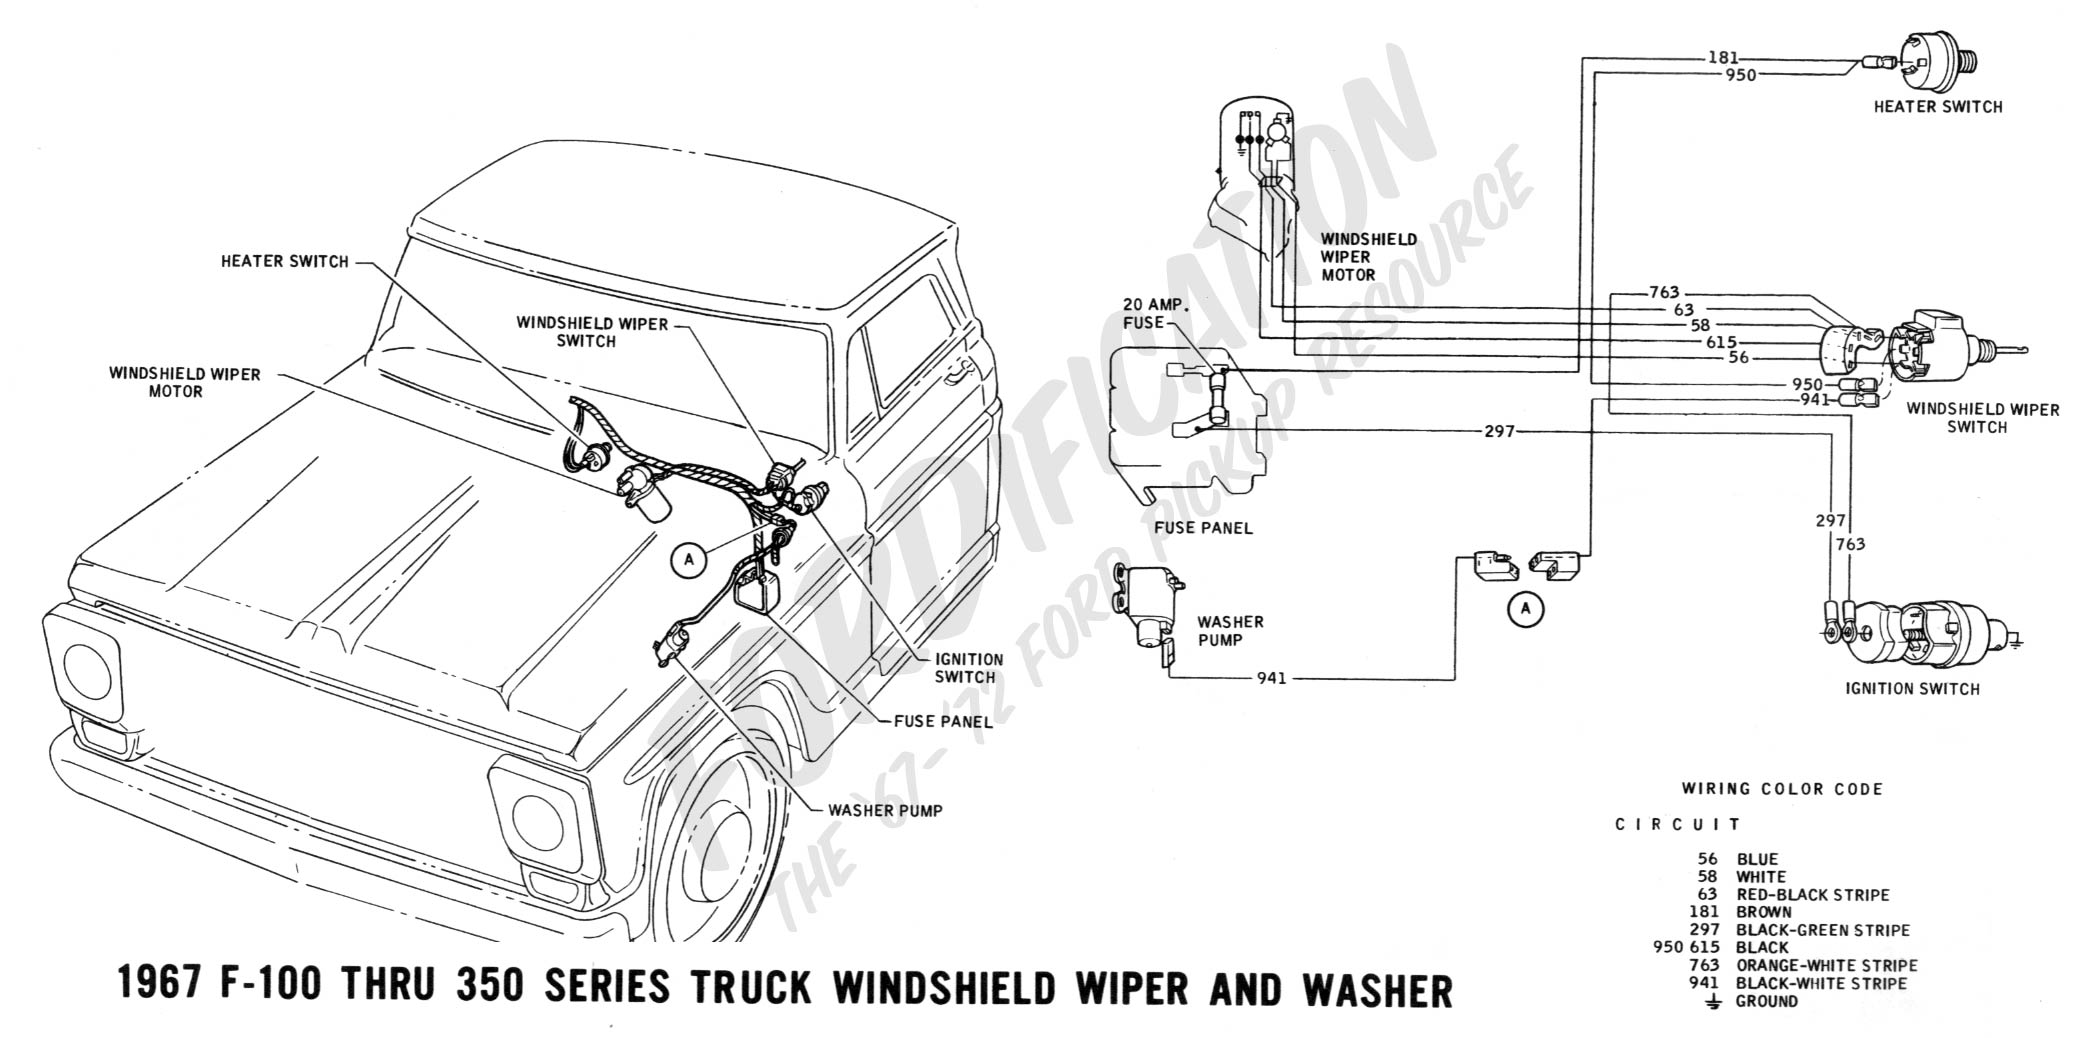 Windshield Wiper Wiring Diagram Ford 1969 Library Controller Circuit Diagrams Wipers Wire The 1967 F 100 Thru 350 And Washer